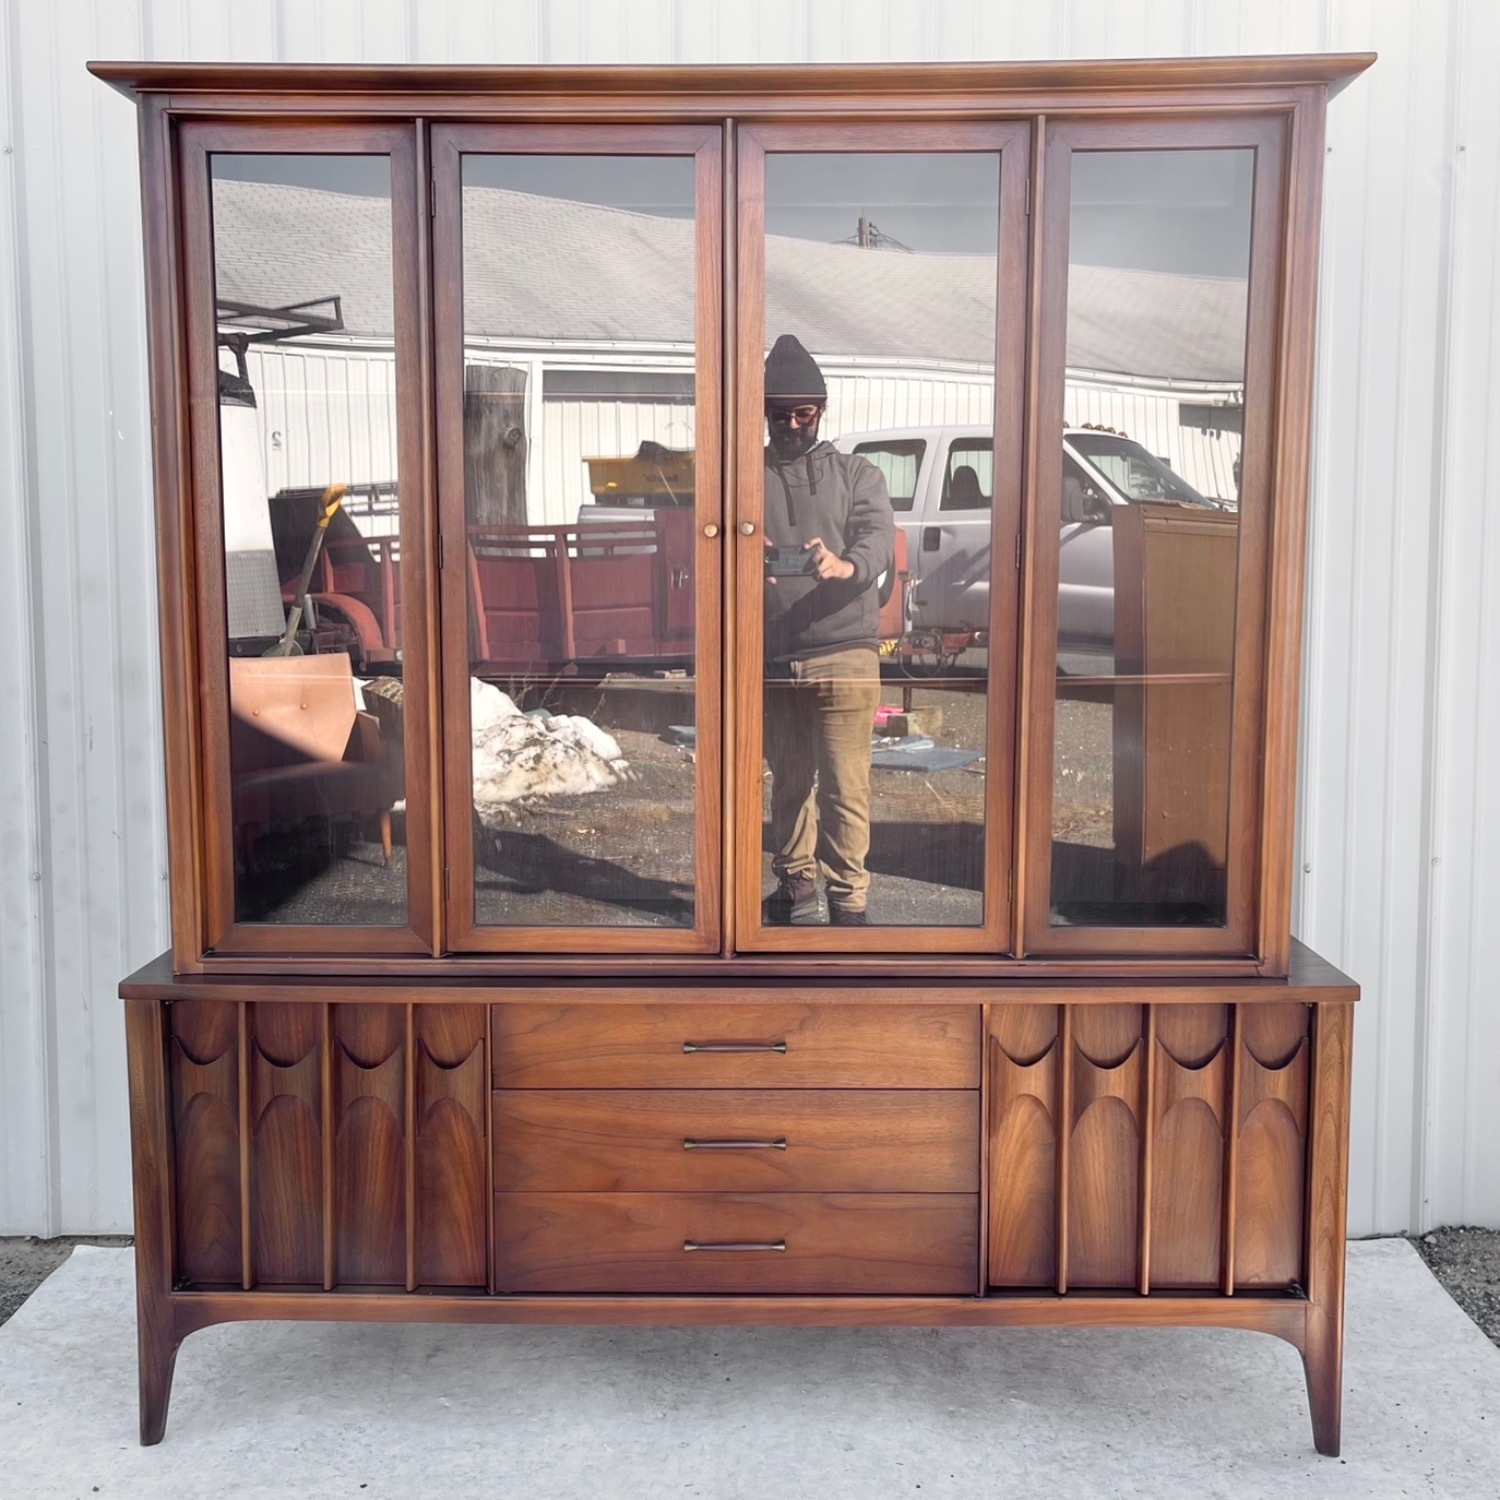 Mid-Century Modern Sideboard With Cabinet - image-14